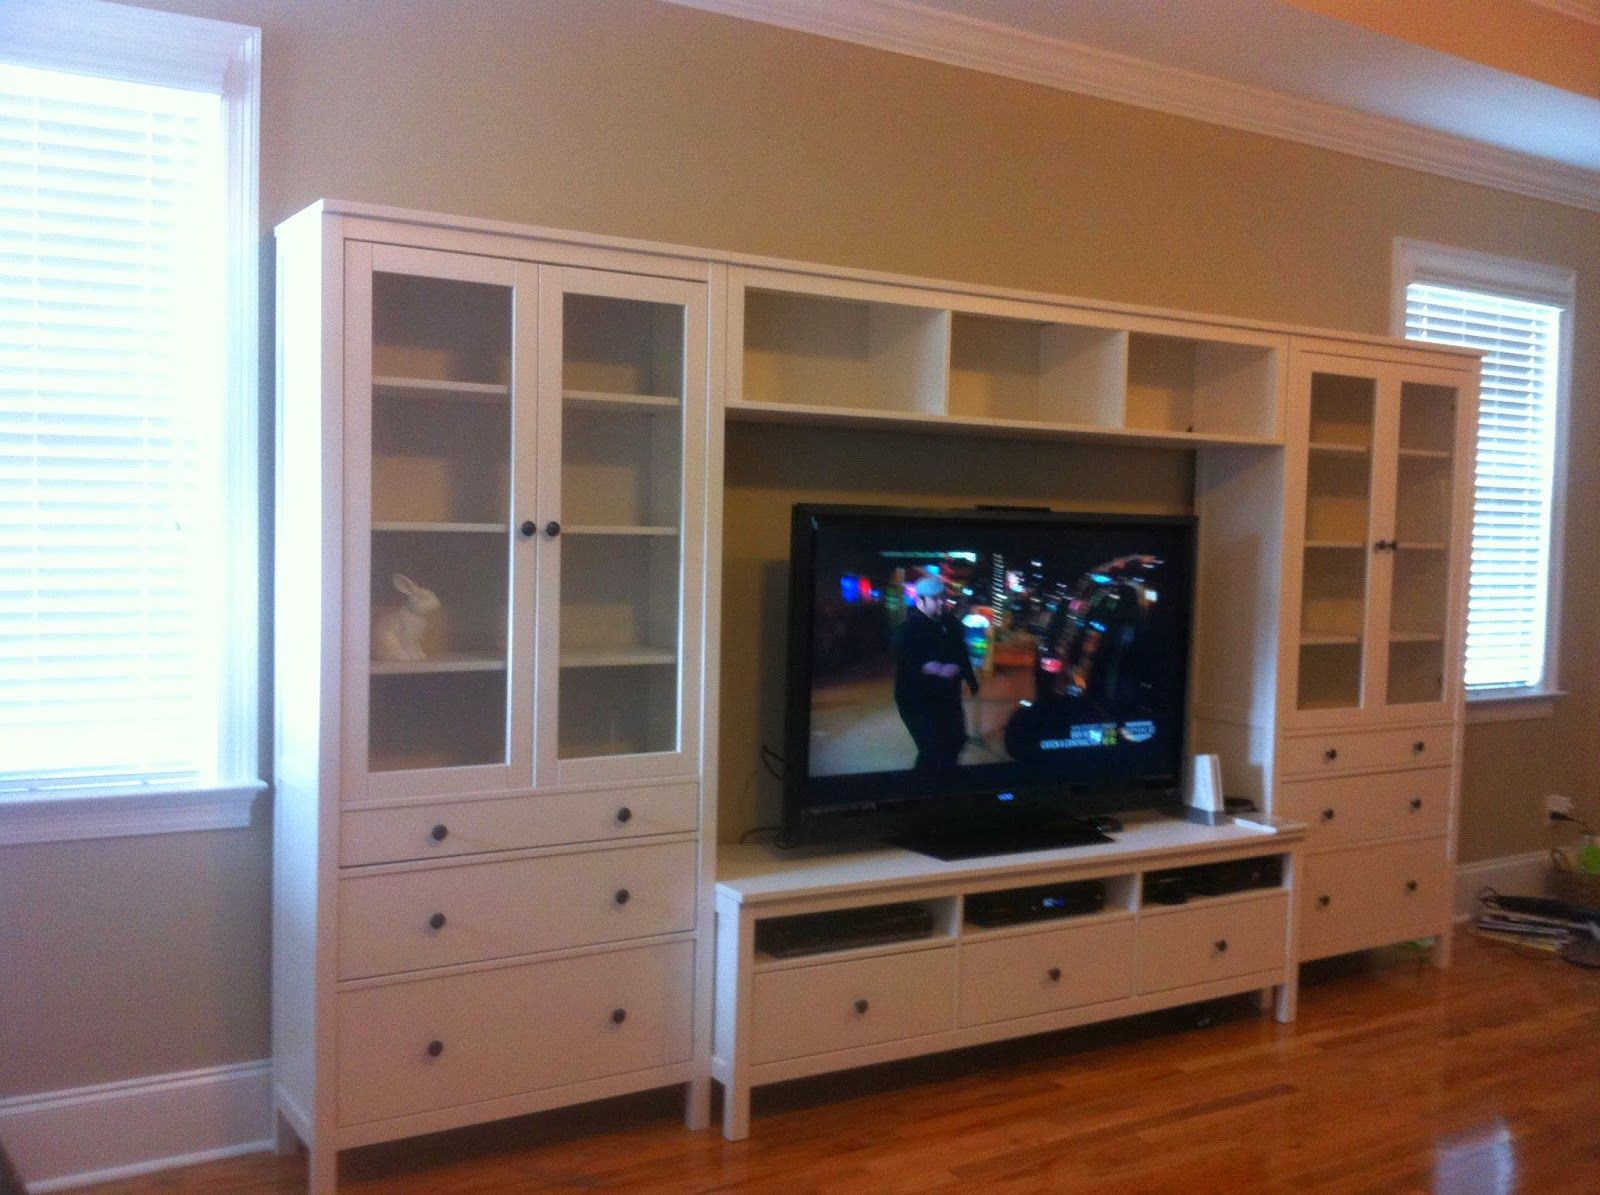 Ikea hemnes entertainment center home sweet home common for Ikea hemnes wohnzimmerserie